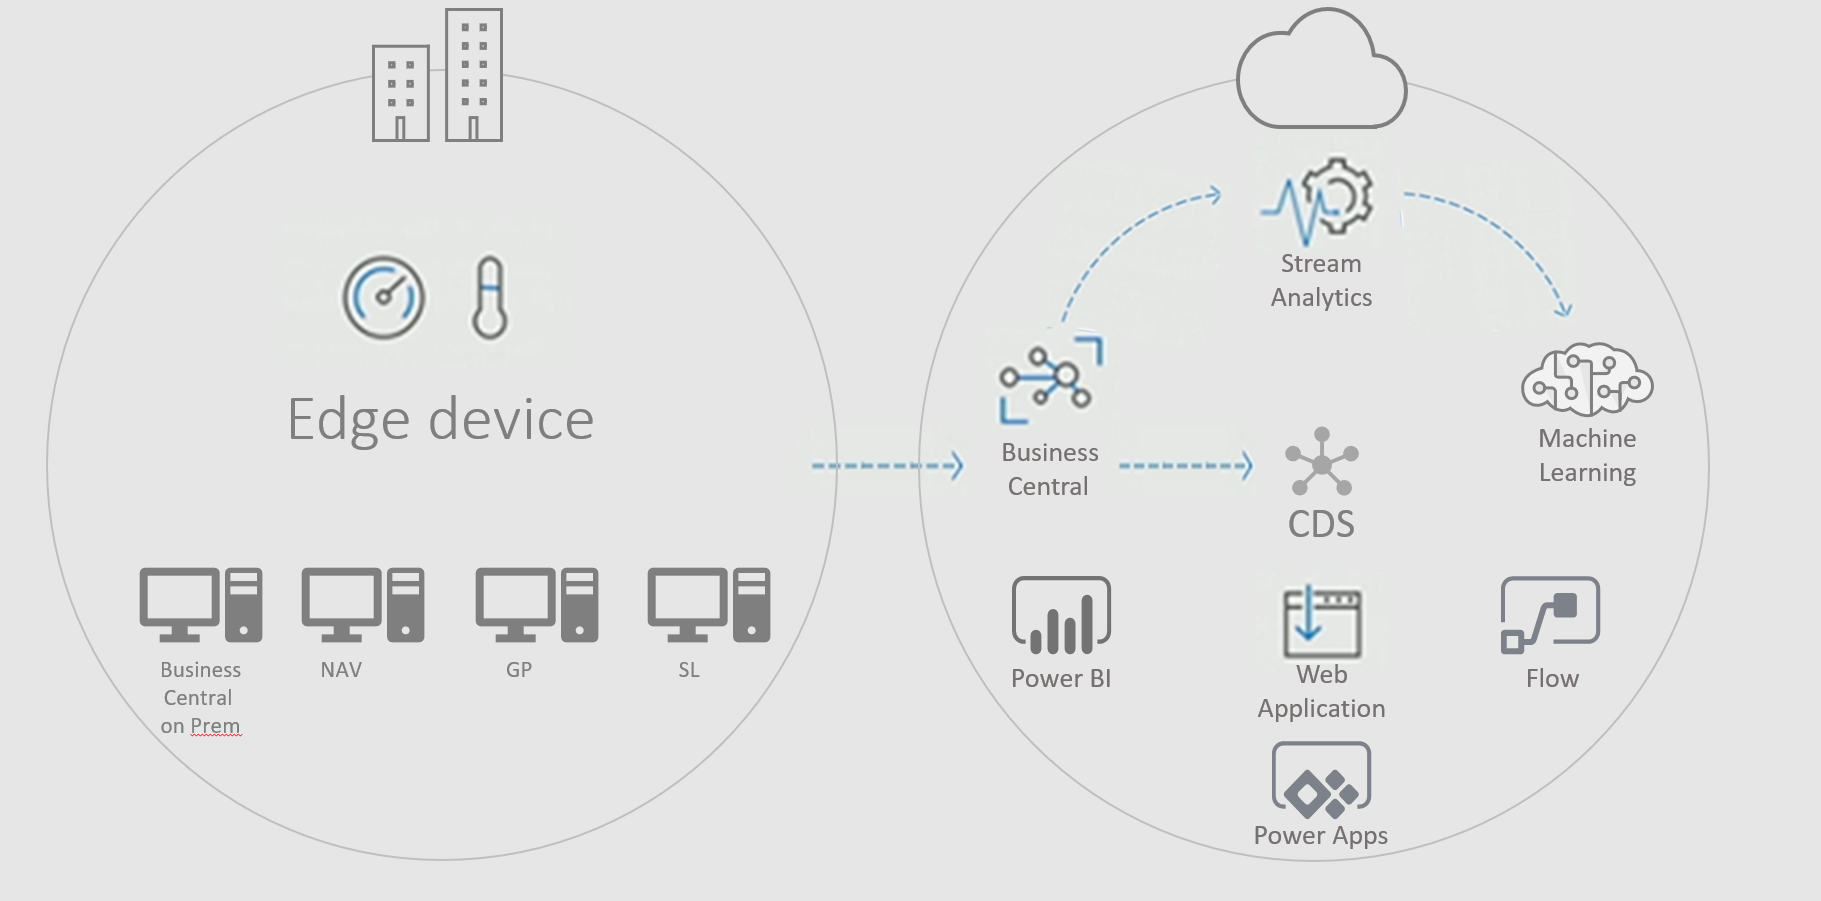 Illustration showing Dynamics solutions and how they connect to Microsofts Common Data Service/Intelligent cloud